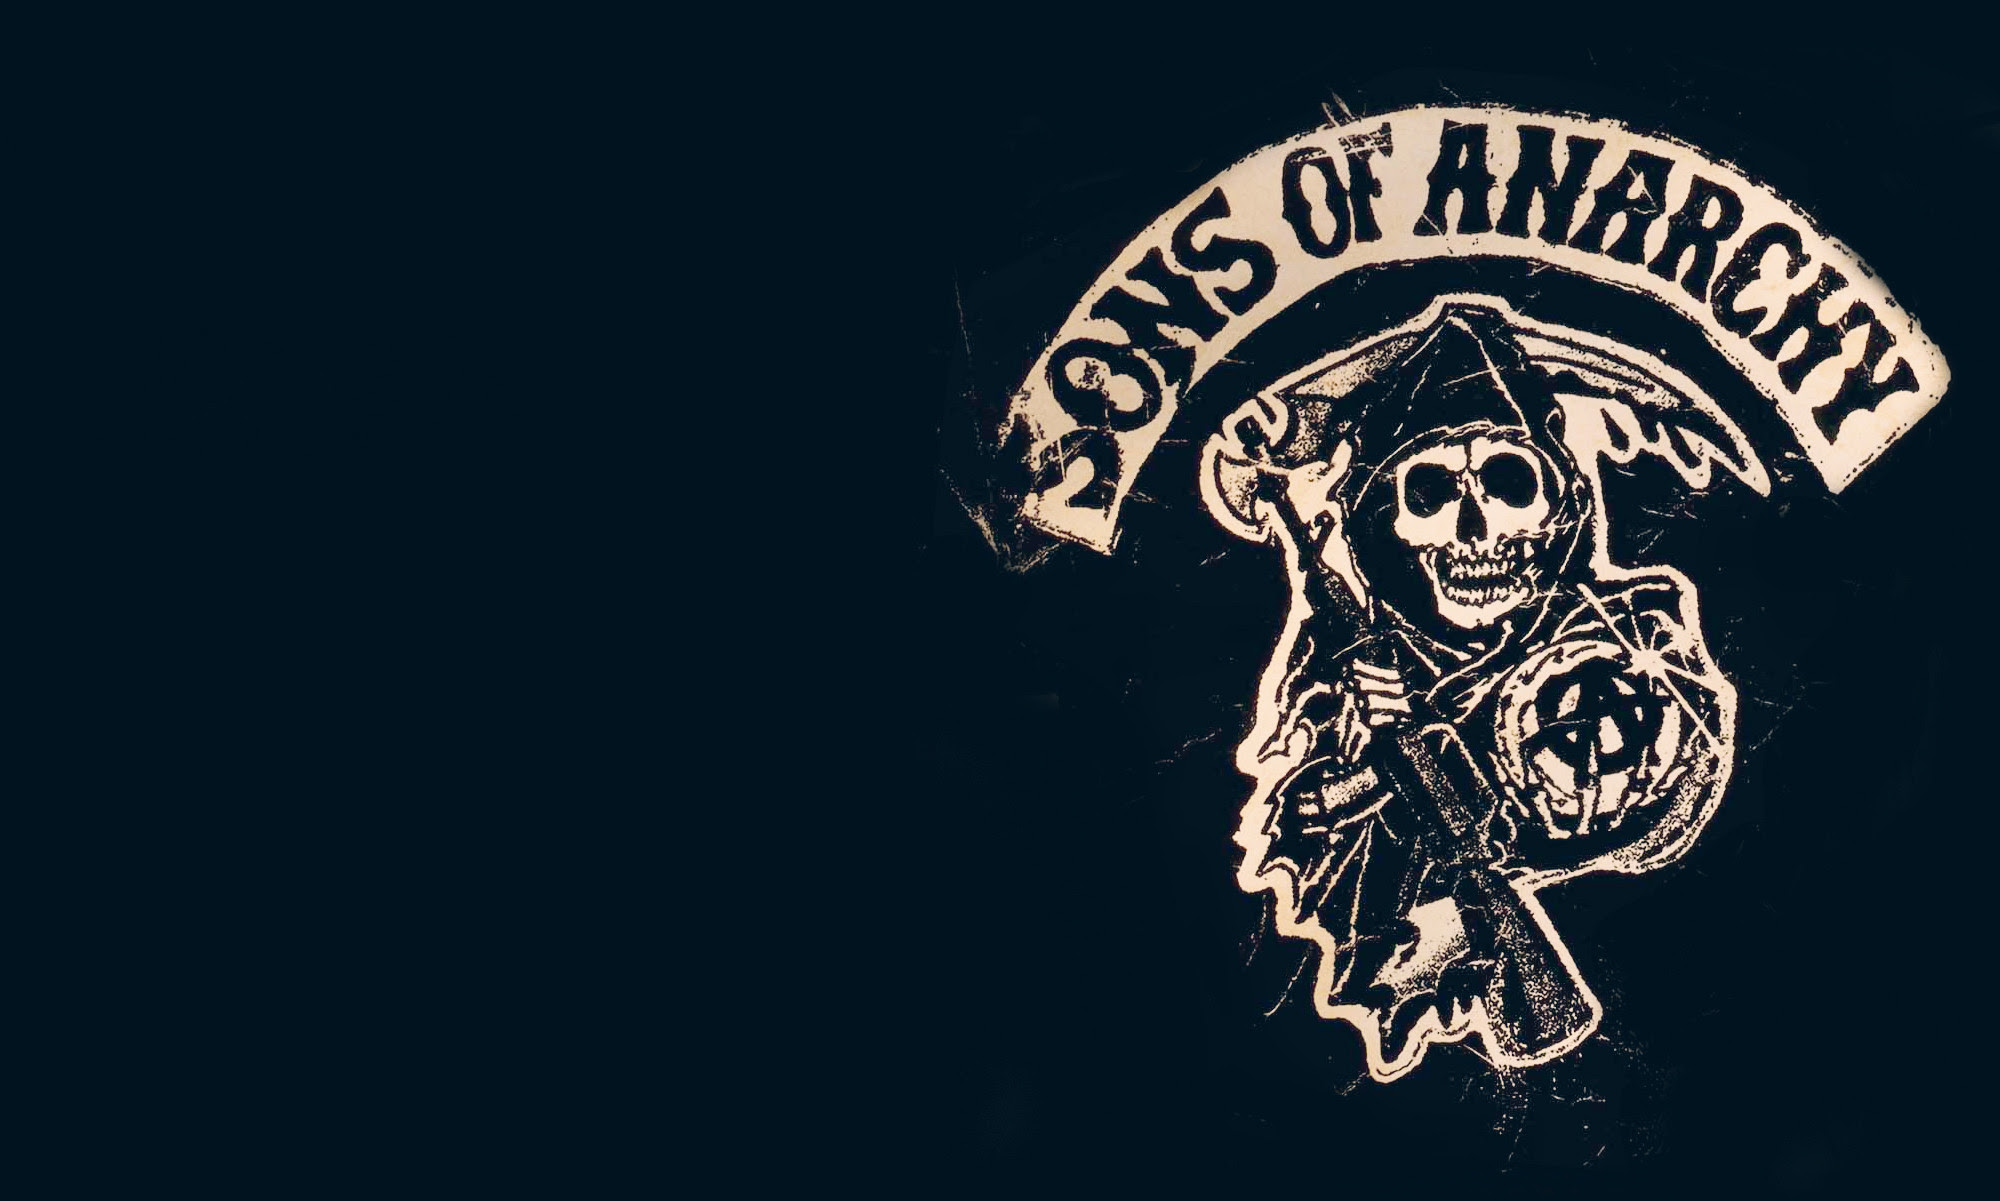 Sons Of Anarchy Wallpapers 66 Images